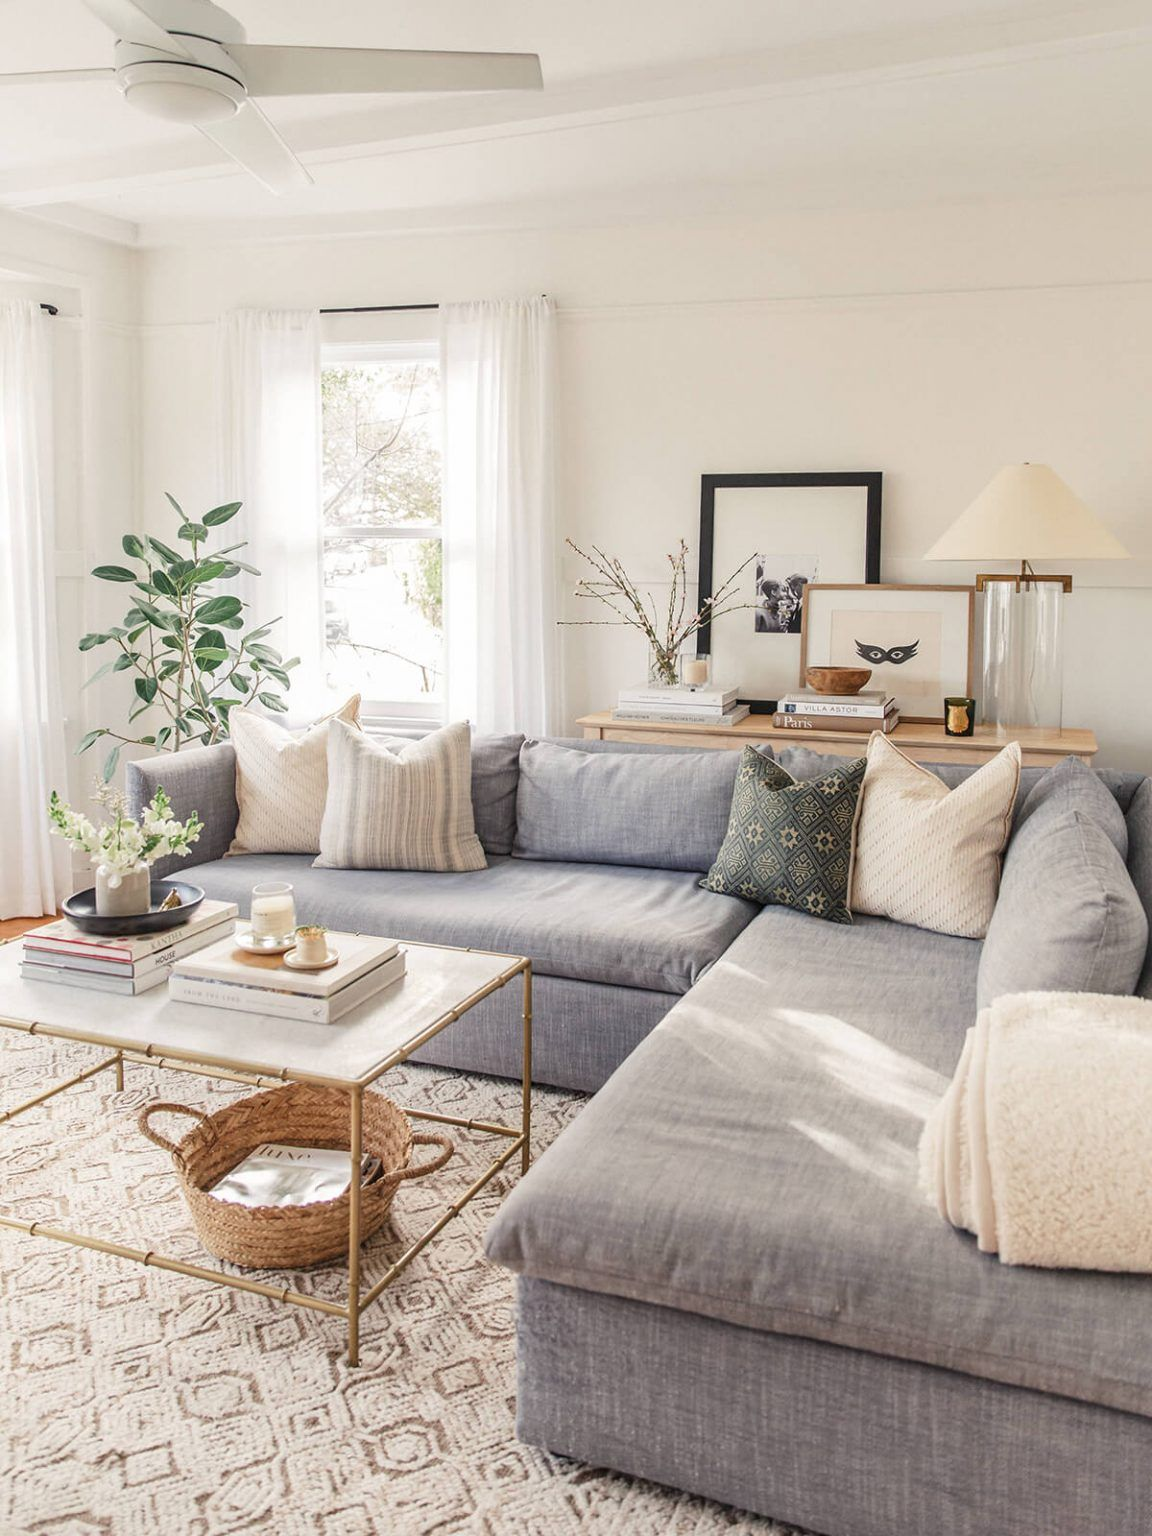 16 Stylish Scandinavian Living Room Ideas That Will Transform Your Space Farm House Living Room Farmhouse Decor Living Room Small Apartment Living Room